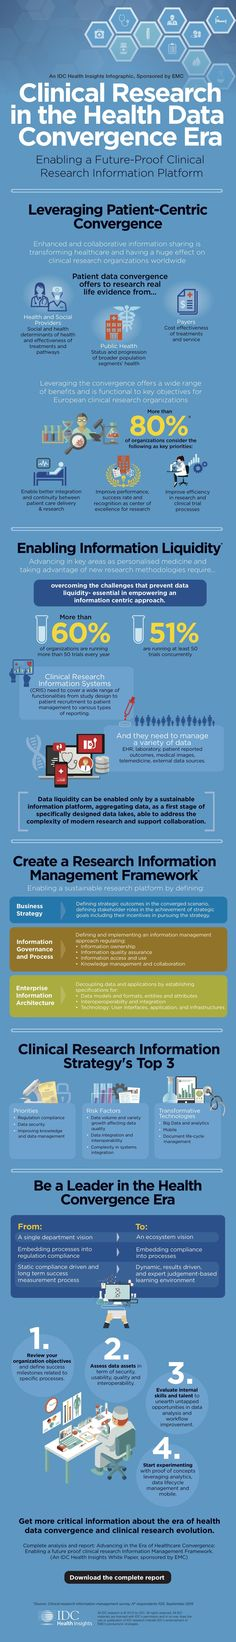 Clinical Research in the Health Data Convergence Era Health And Wellness, Health Care, Legal Highs, Health Literacy, Clinical Research, Data Science, Digital Marketing, Entry Level, Big Data